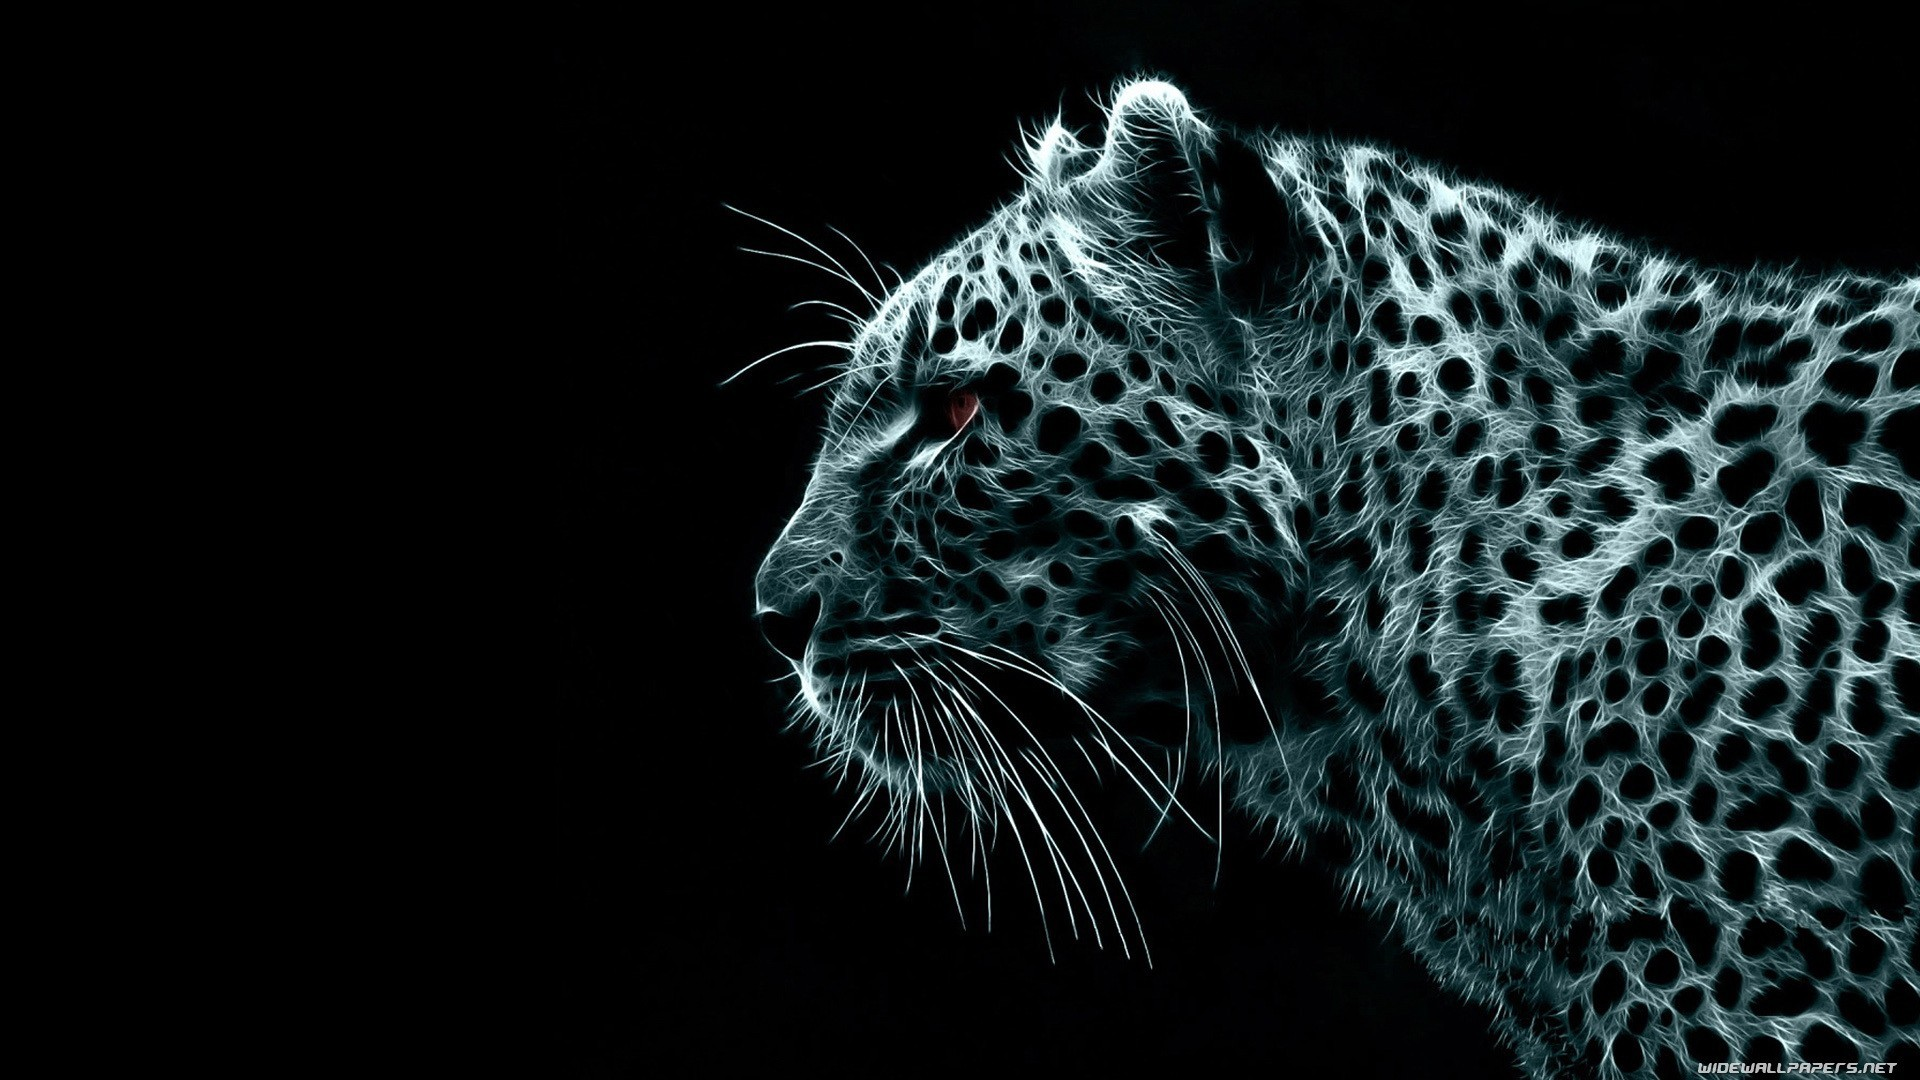 1920x1080 ... by Resolution: 340x192 - 640x360 - . Download cool digital  wallpaper having tiger and black background.